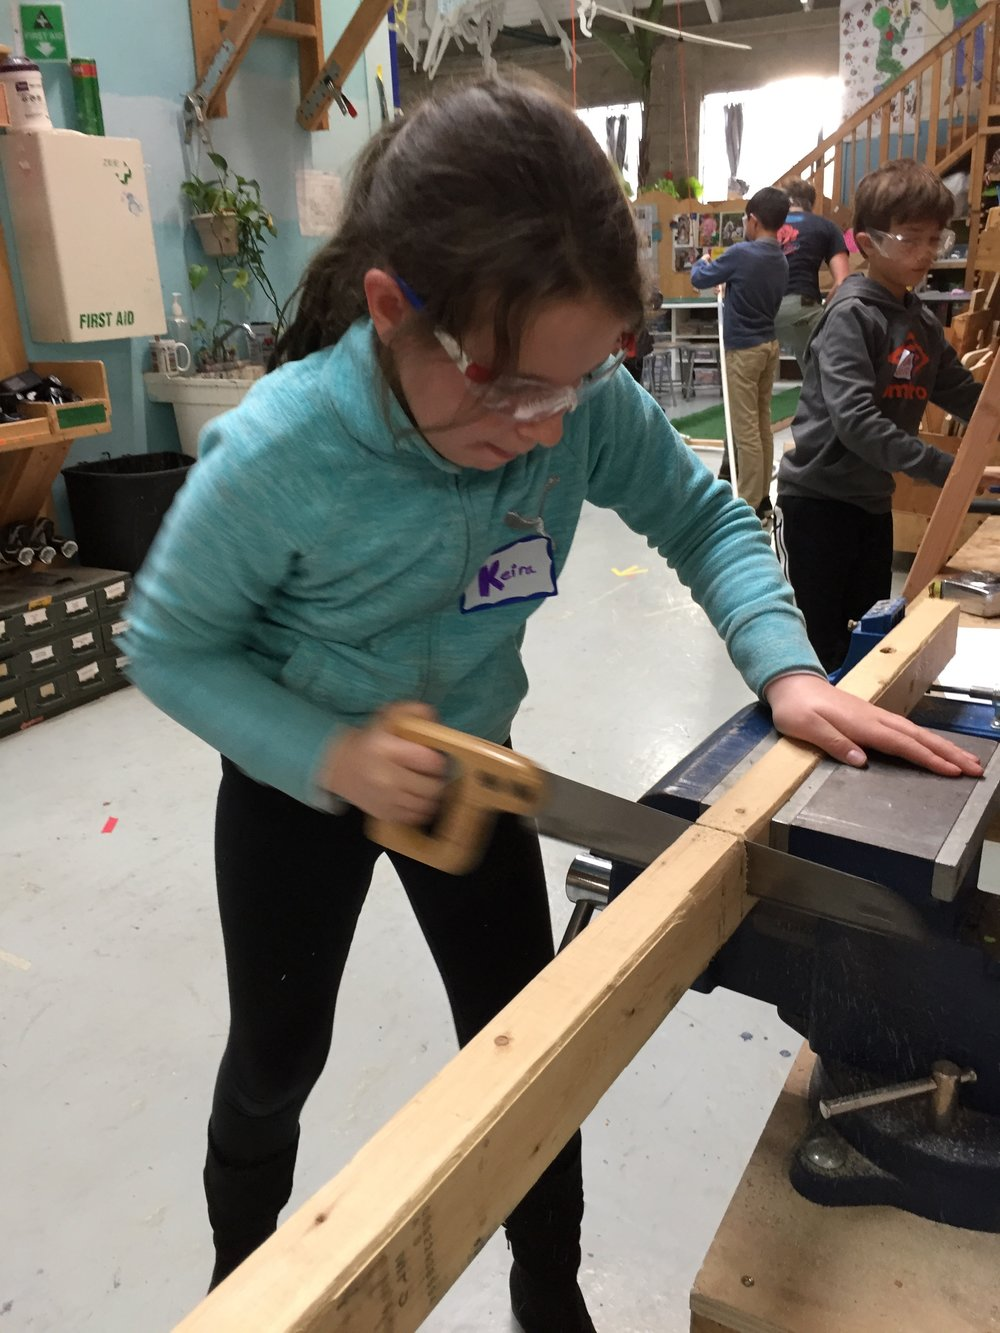 Keira uses the handsaw to cut more structural supports.